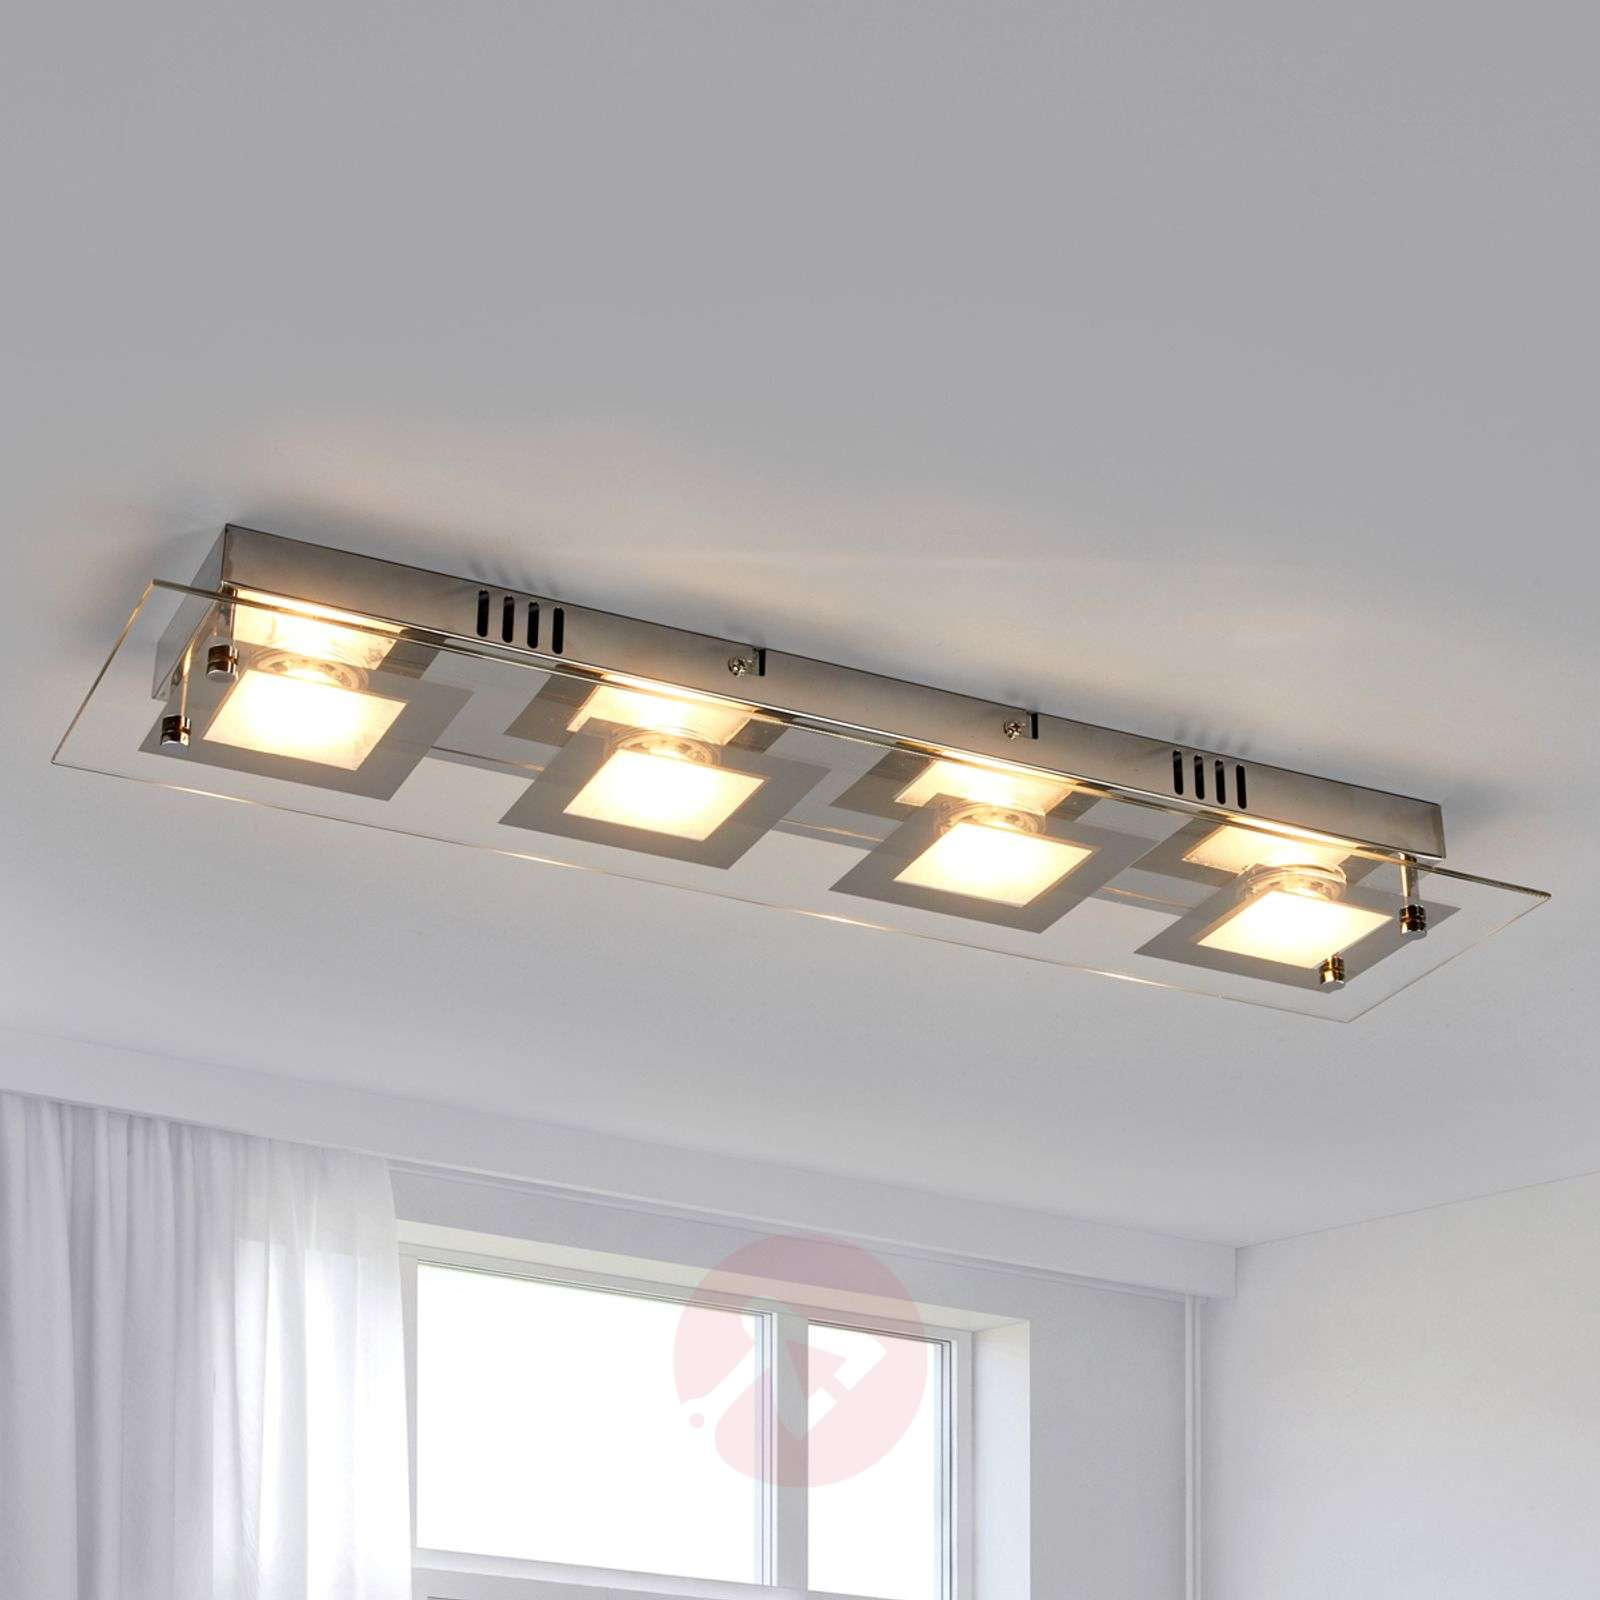 Rectangular LED Ceiling Light Manja With Chrome